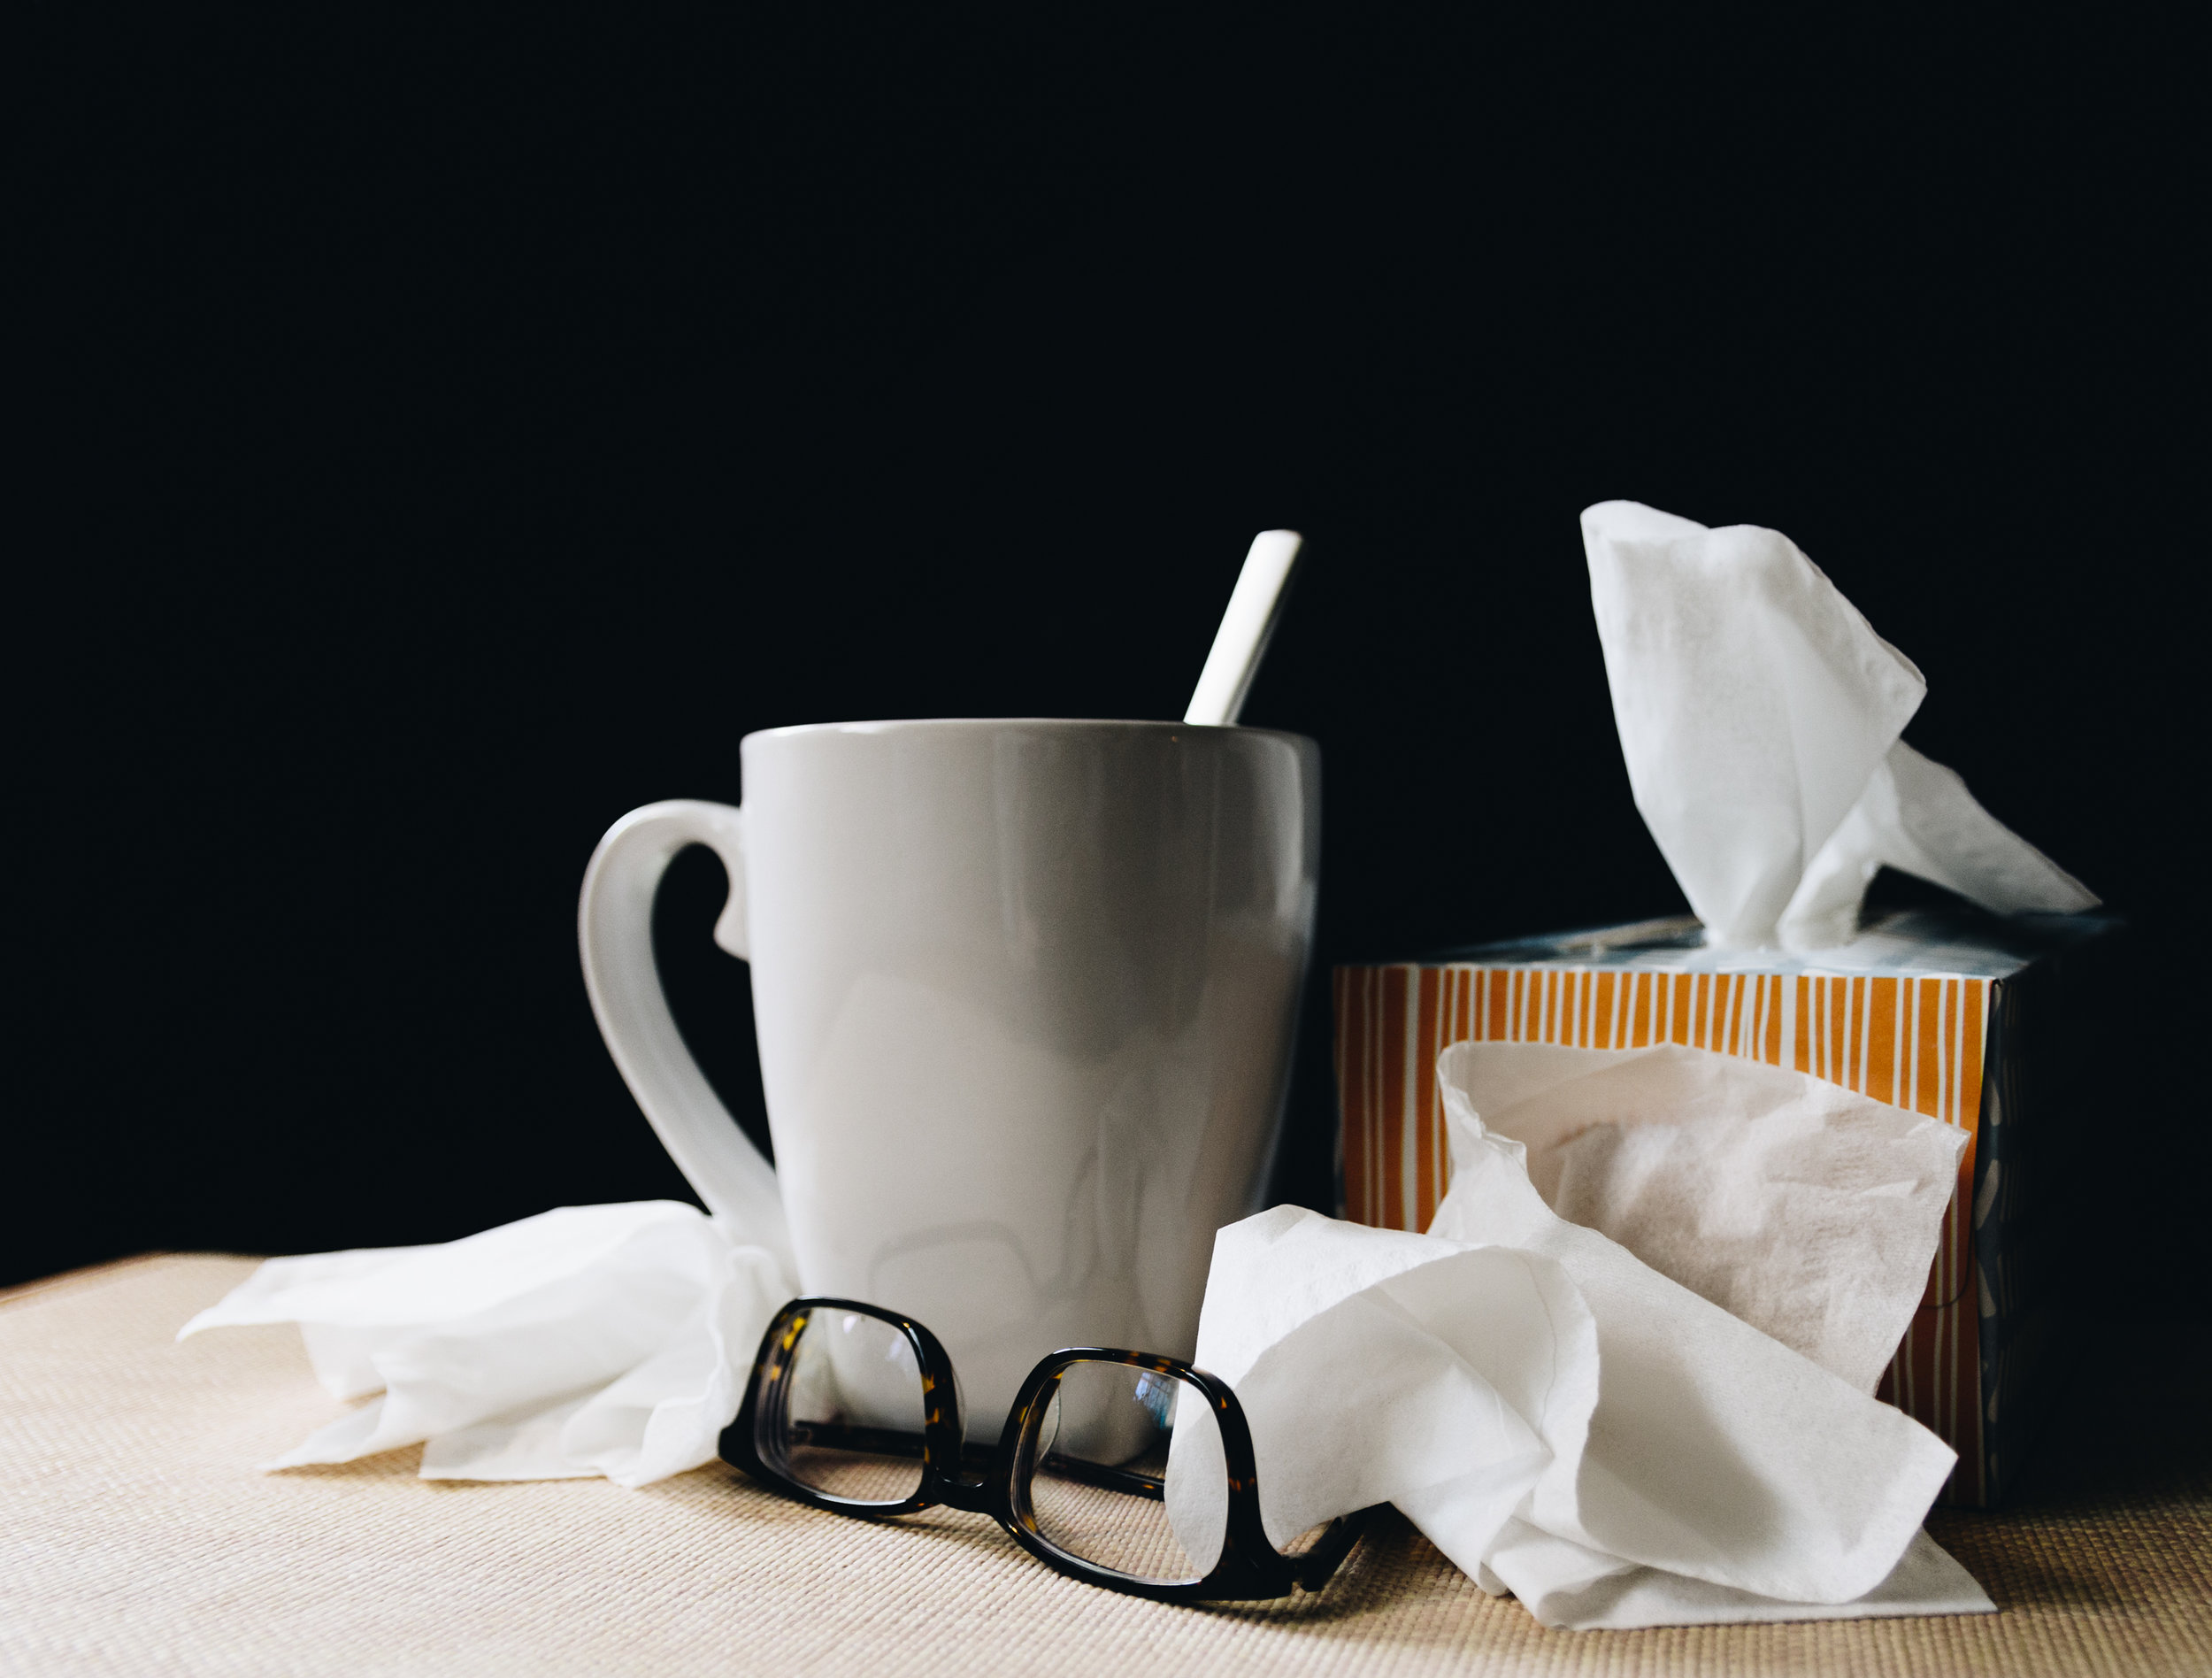 Illness care - when you need to be better fast